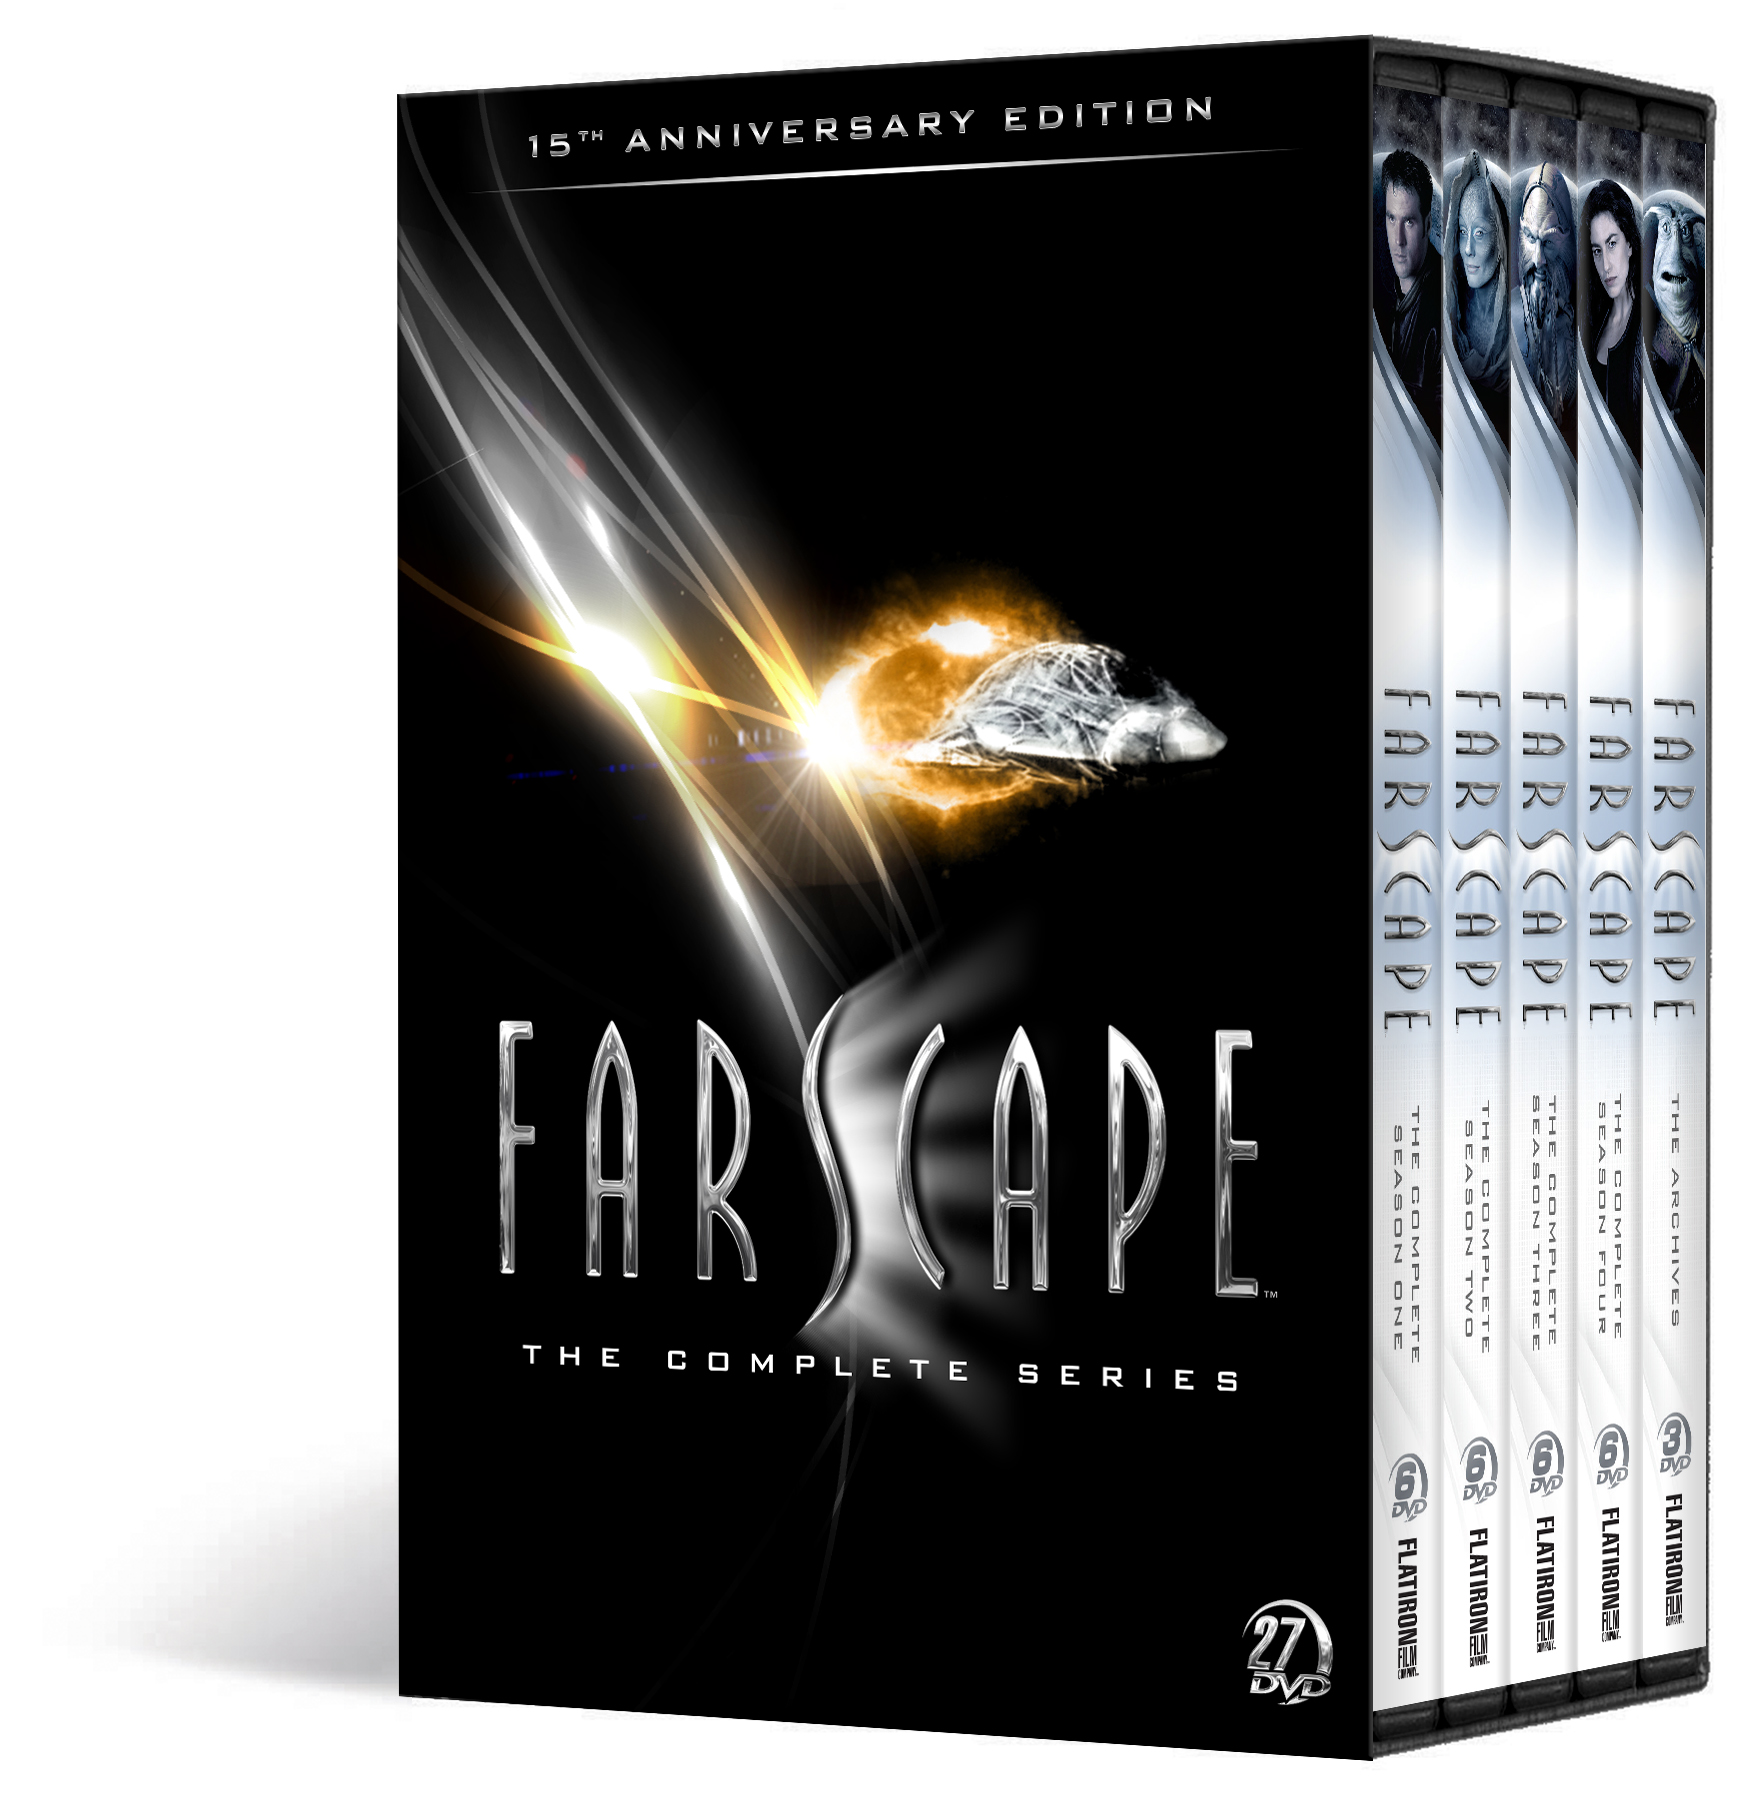 FarscapeCompleteDVD